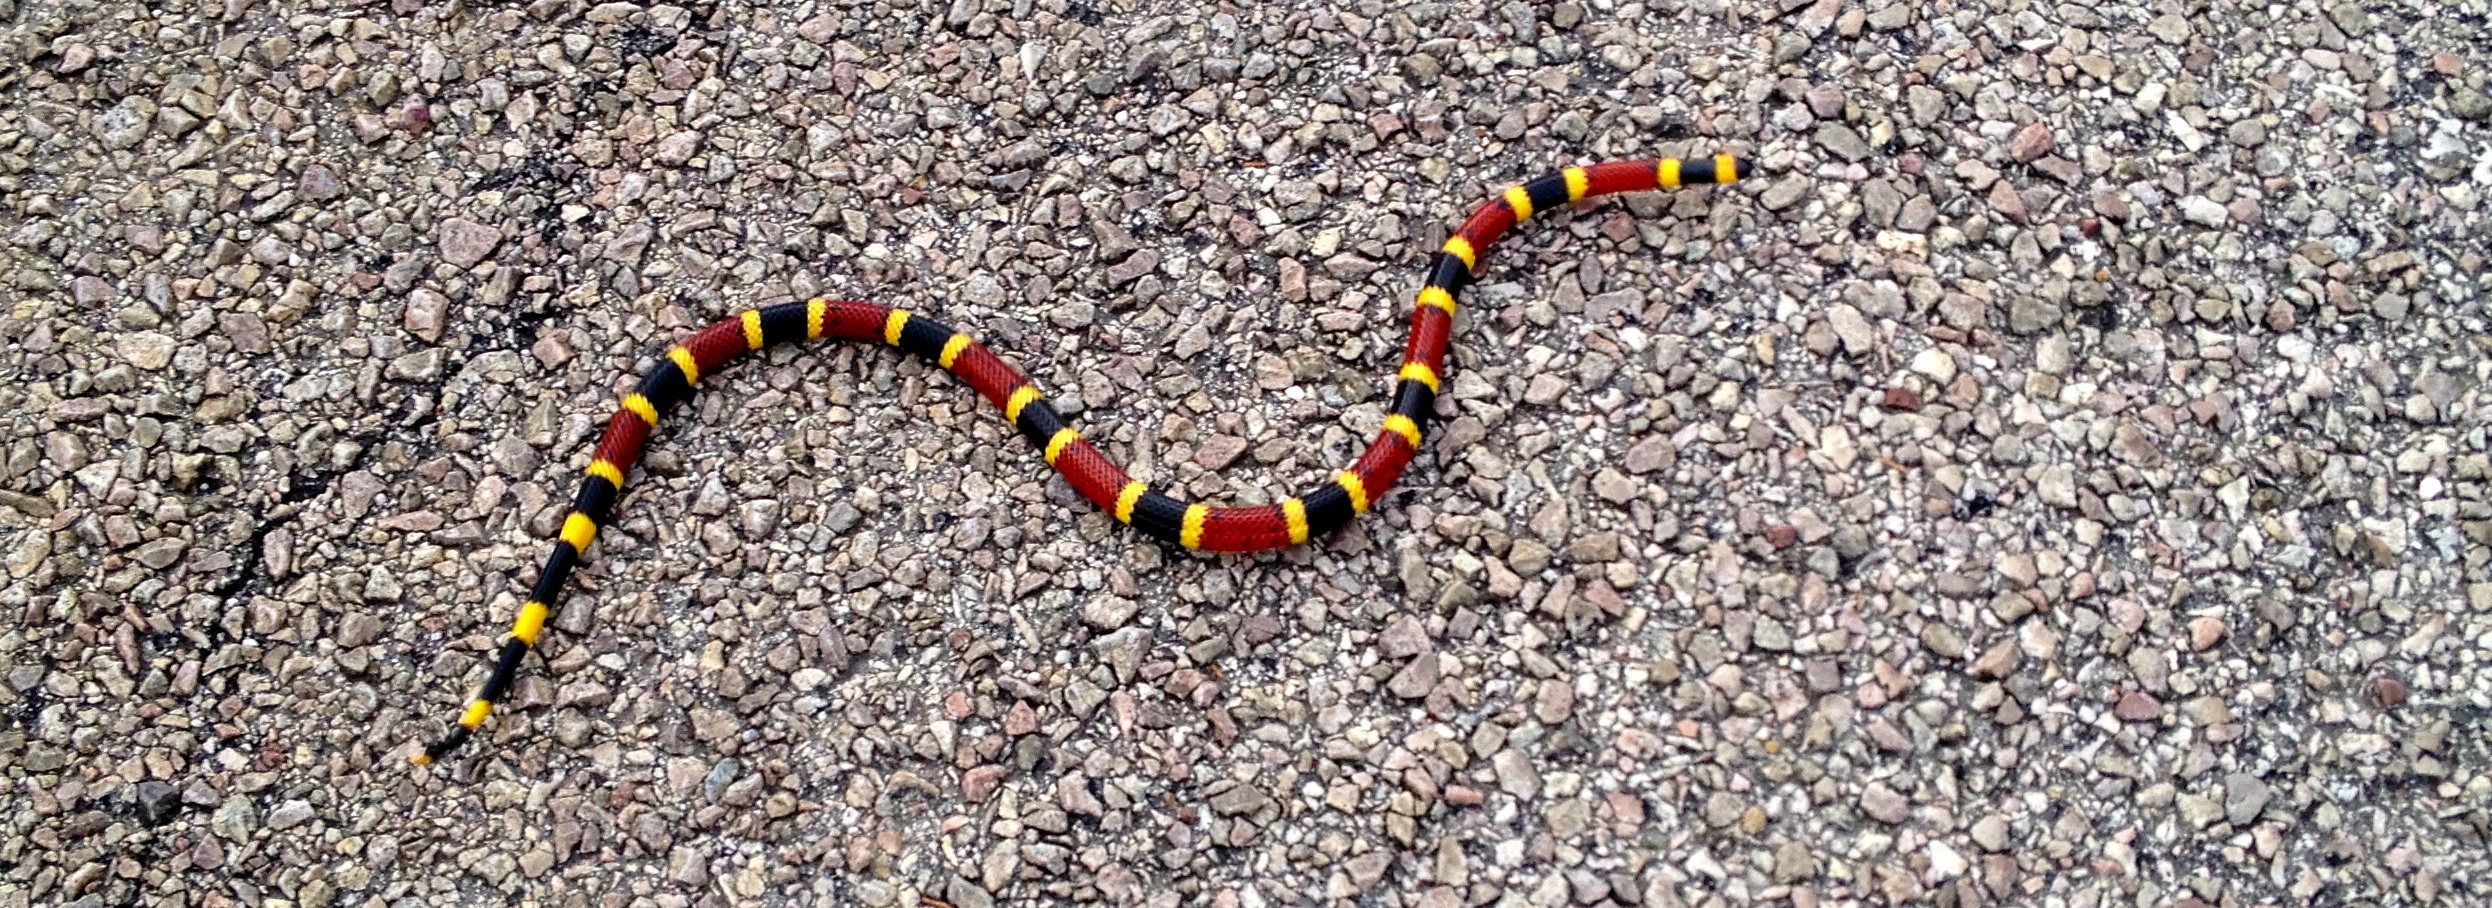 May 22, 2014: Red and yellow…you know   Mike Leggett Outdoors